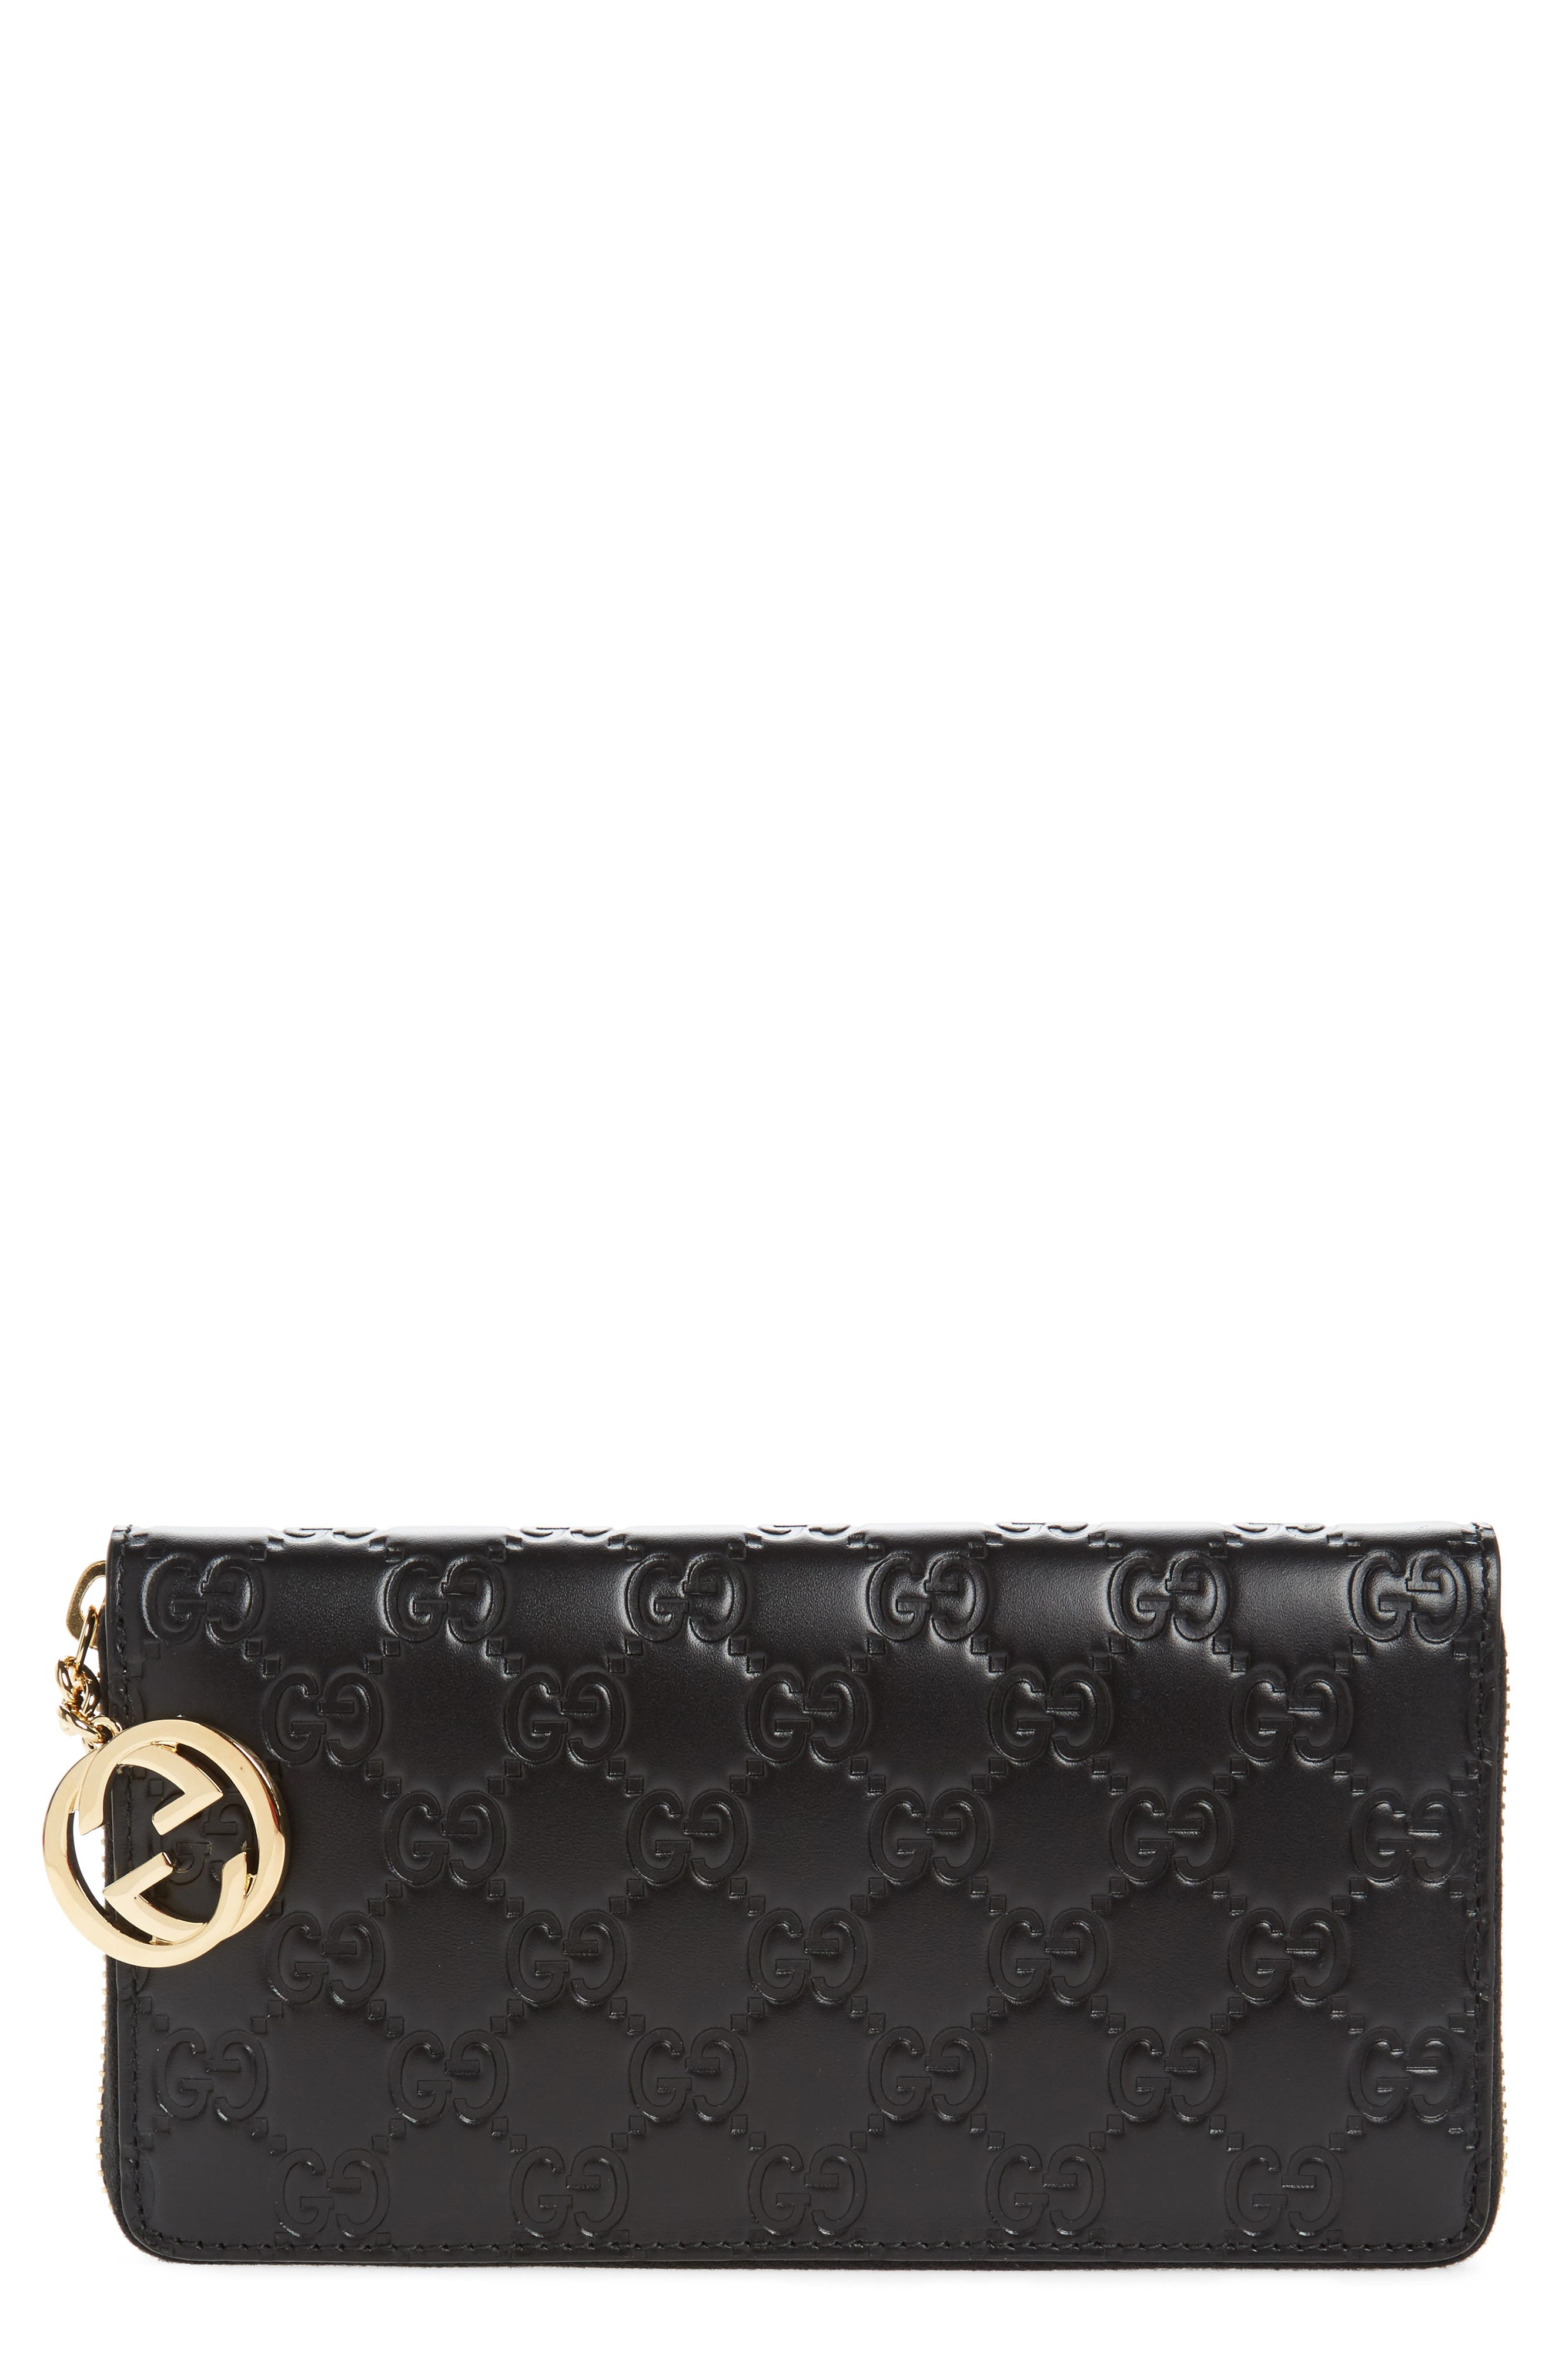 Gucci Icon Leather Zip-Around Wallet